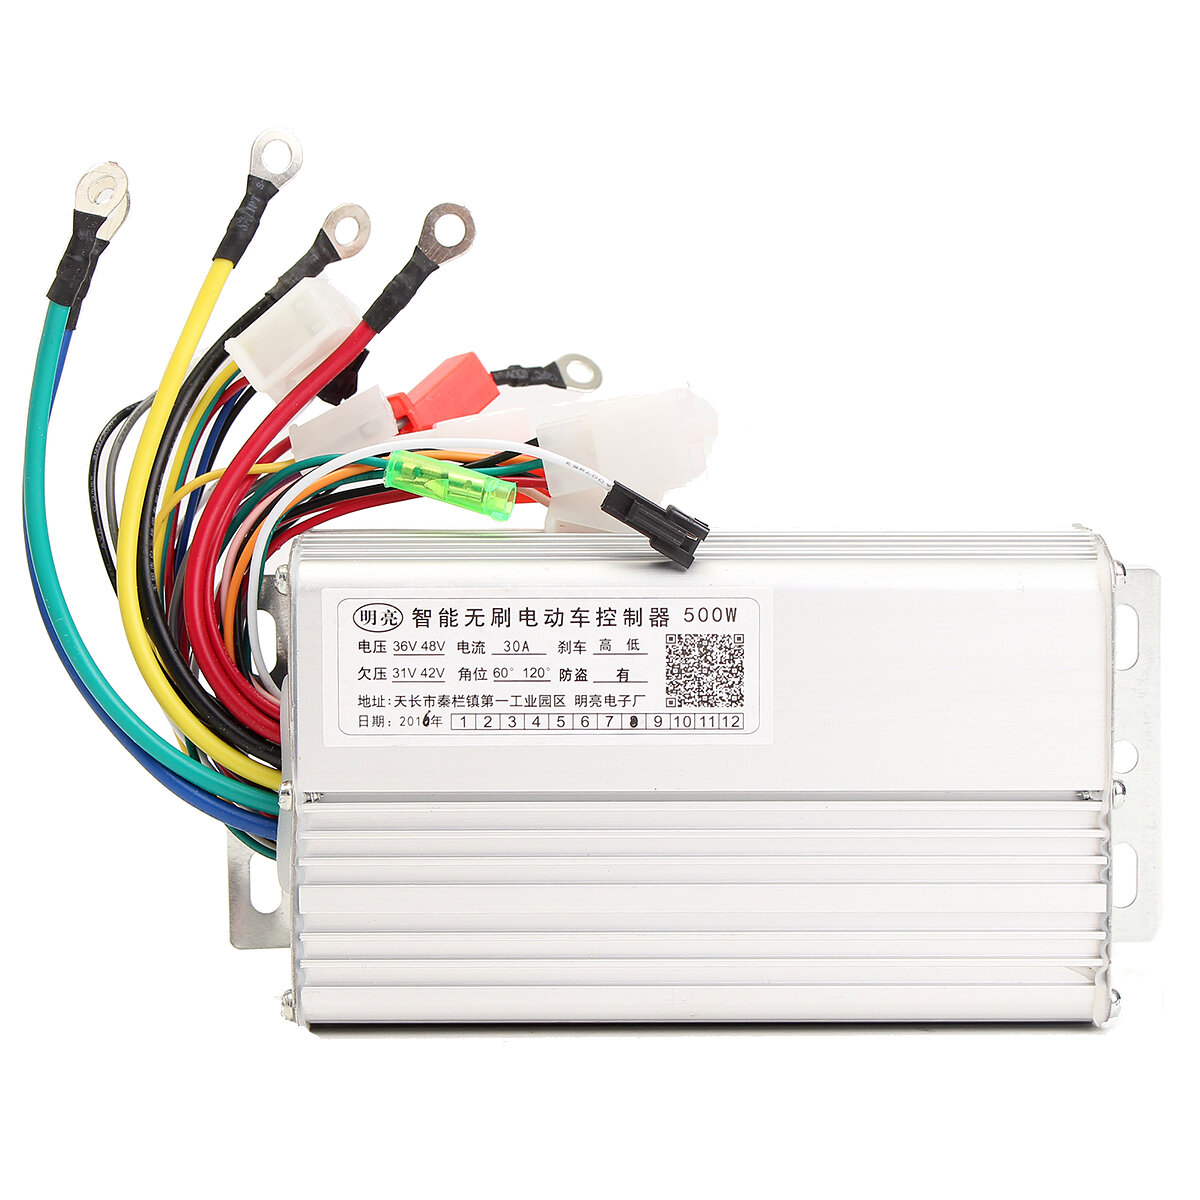 hight resolution of 48v 500w 30a brushless motor controller for electric scooters bike cod